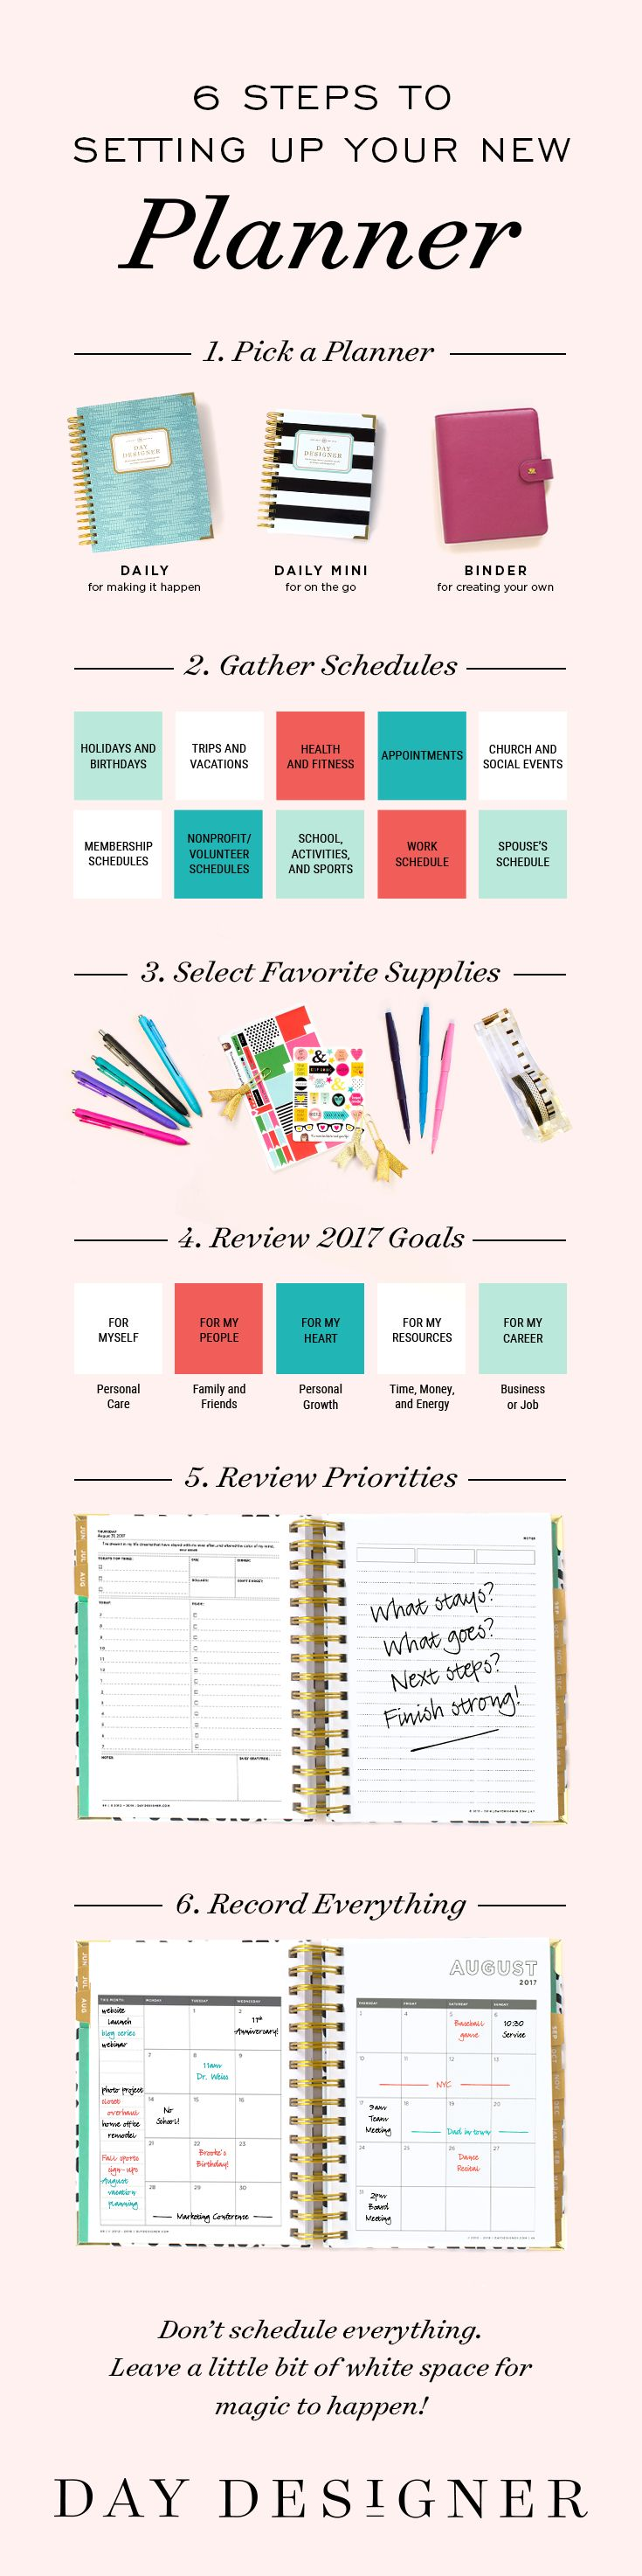 Planner set up ideas | Planning a planner set up | Planner inspiration